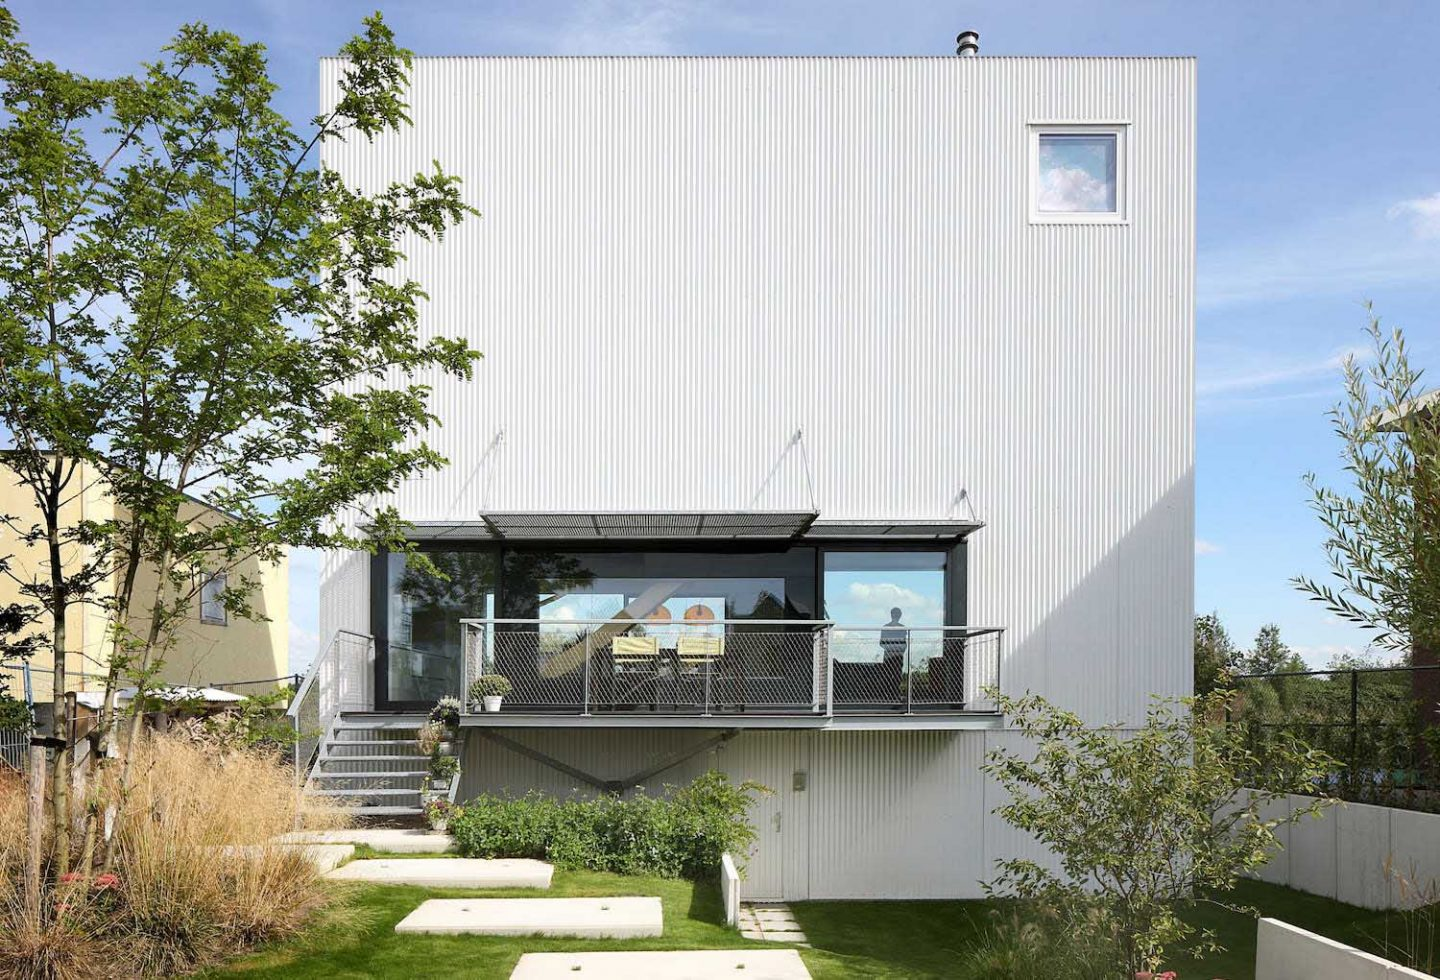 ignant_architecture_mka_woning_almere_small_04